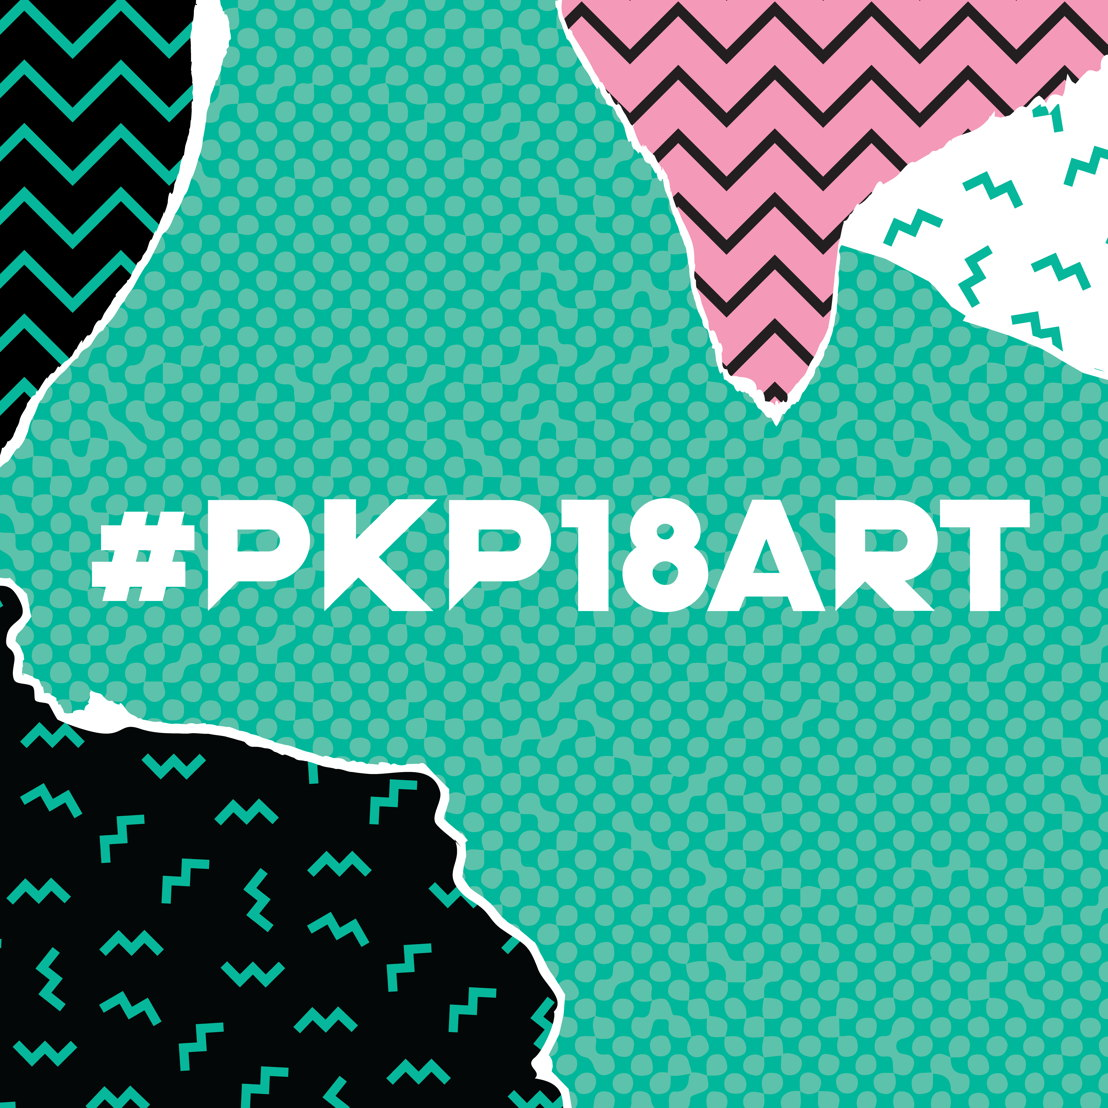 PKP18ART visual